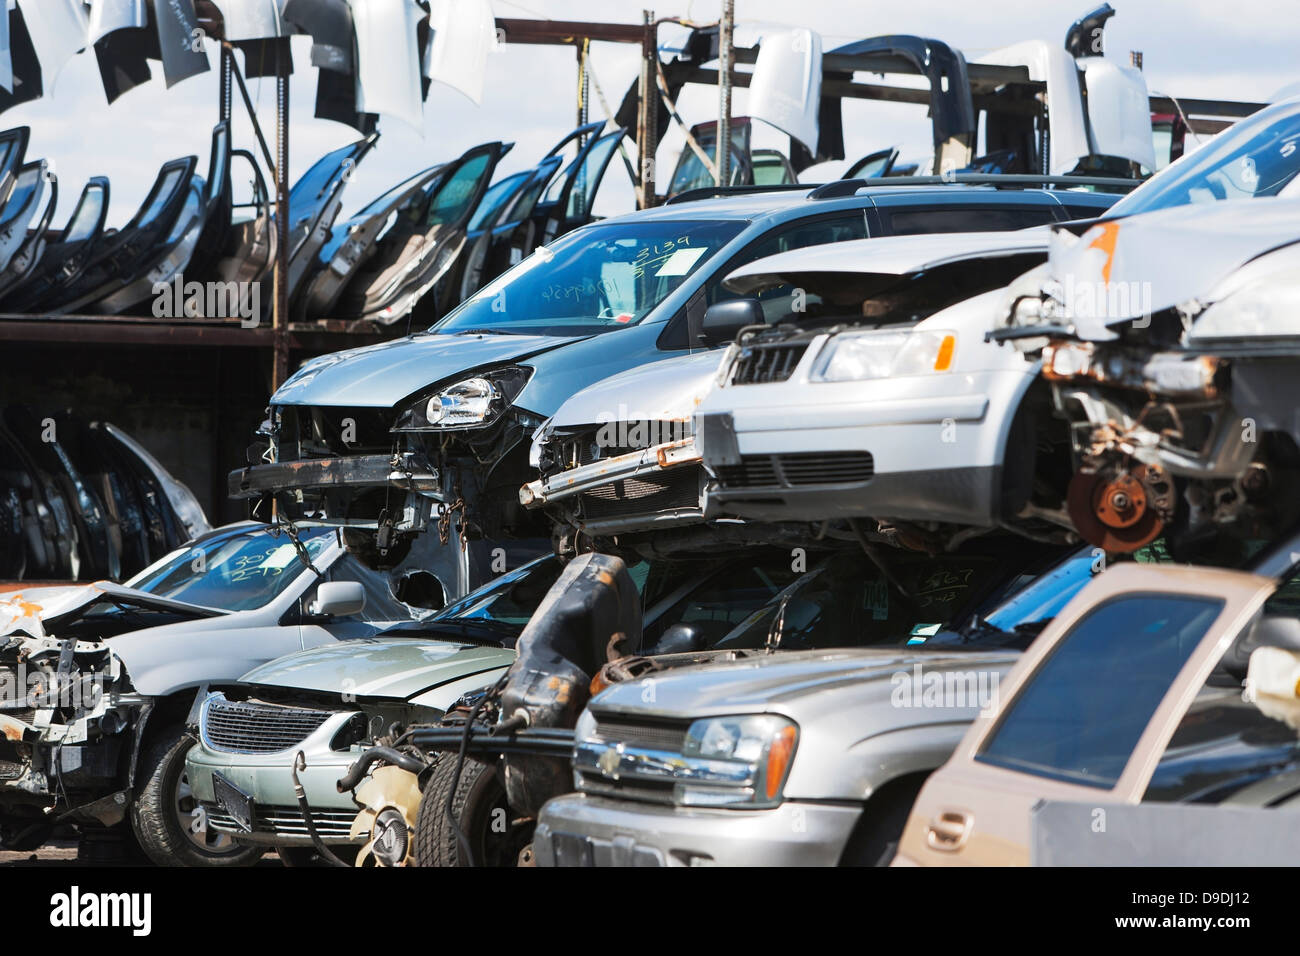 Cars stacked in scrap yard - Stock Image